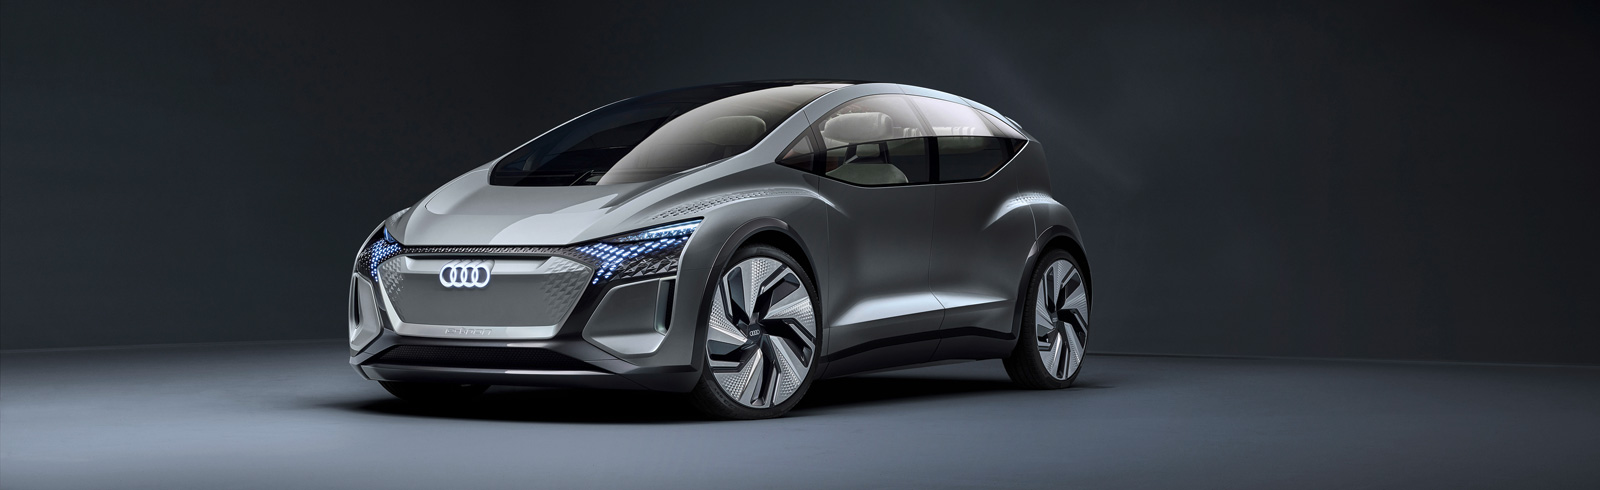 Audi AI:ME - an E-class city car with a 65 kWh battery and 125 kW